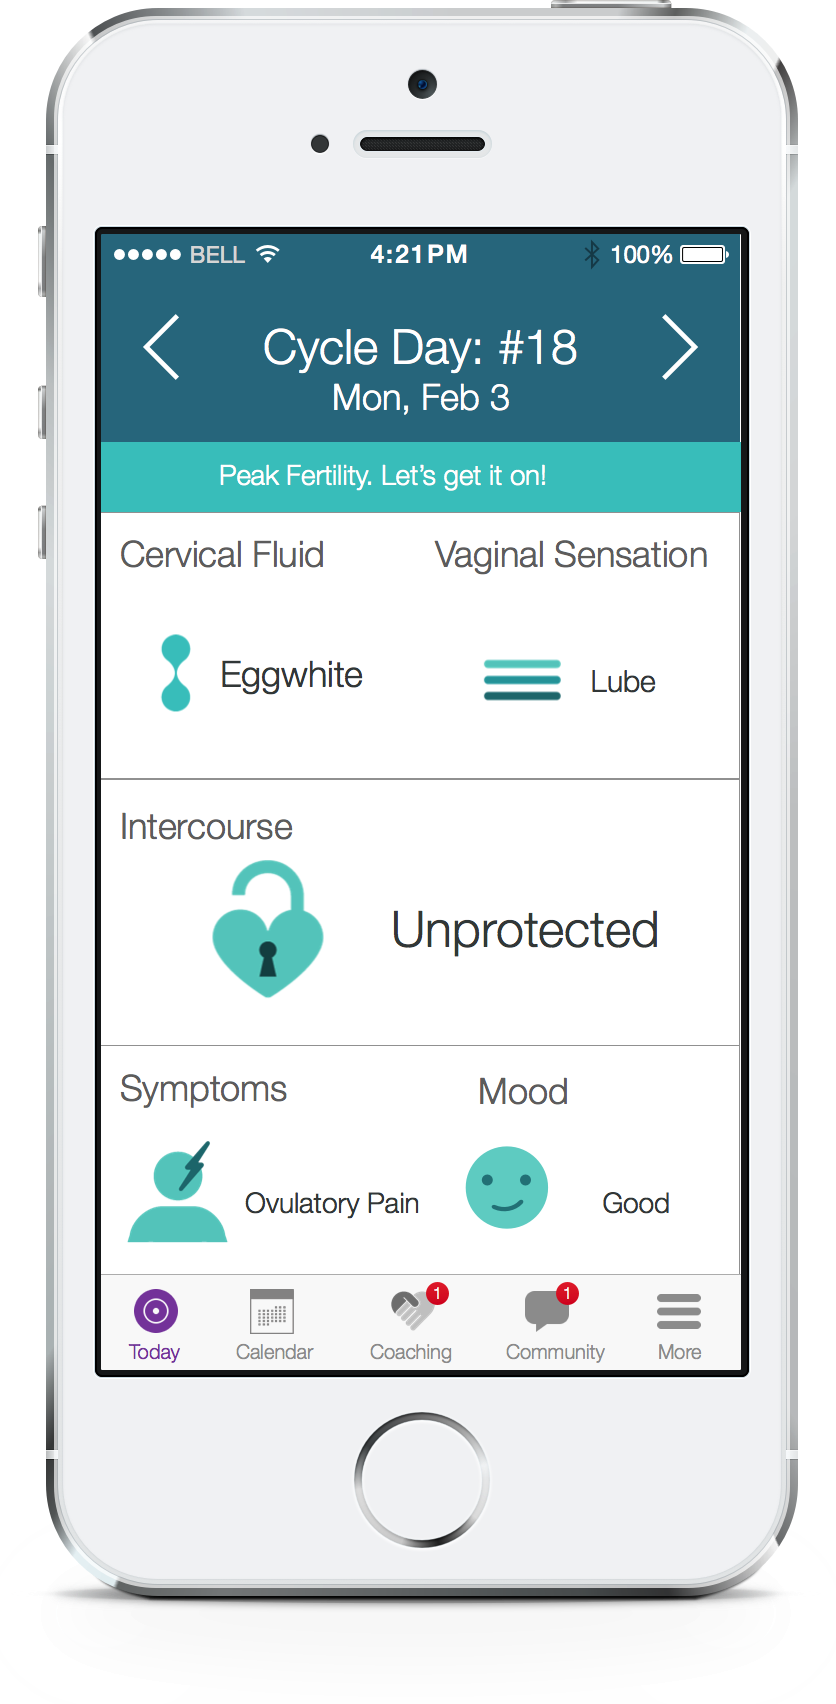 Ovatemp has built a mobile device-based fertility health platform inspired by one couple's personal experience